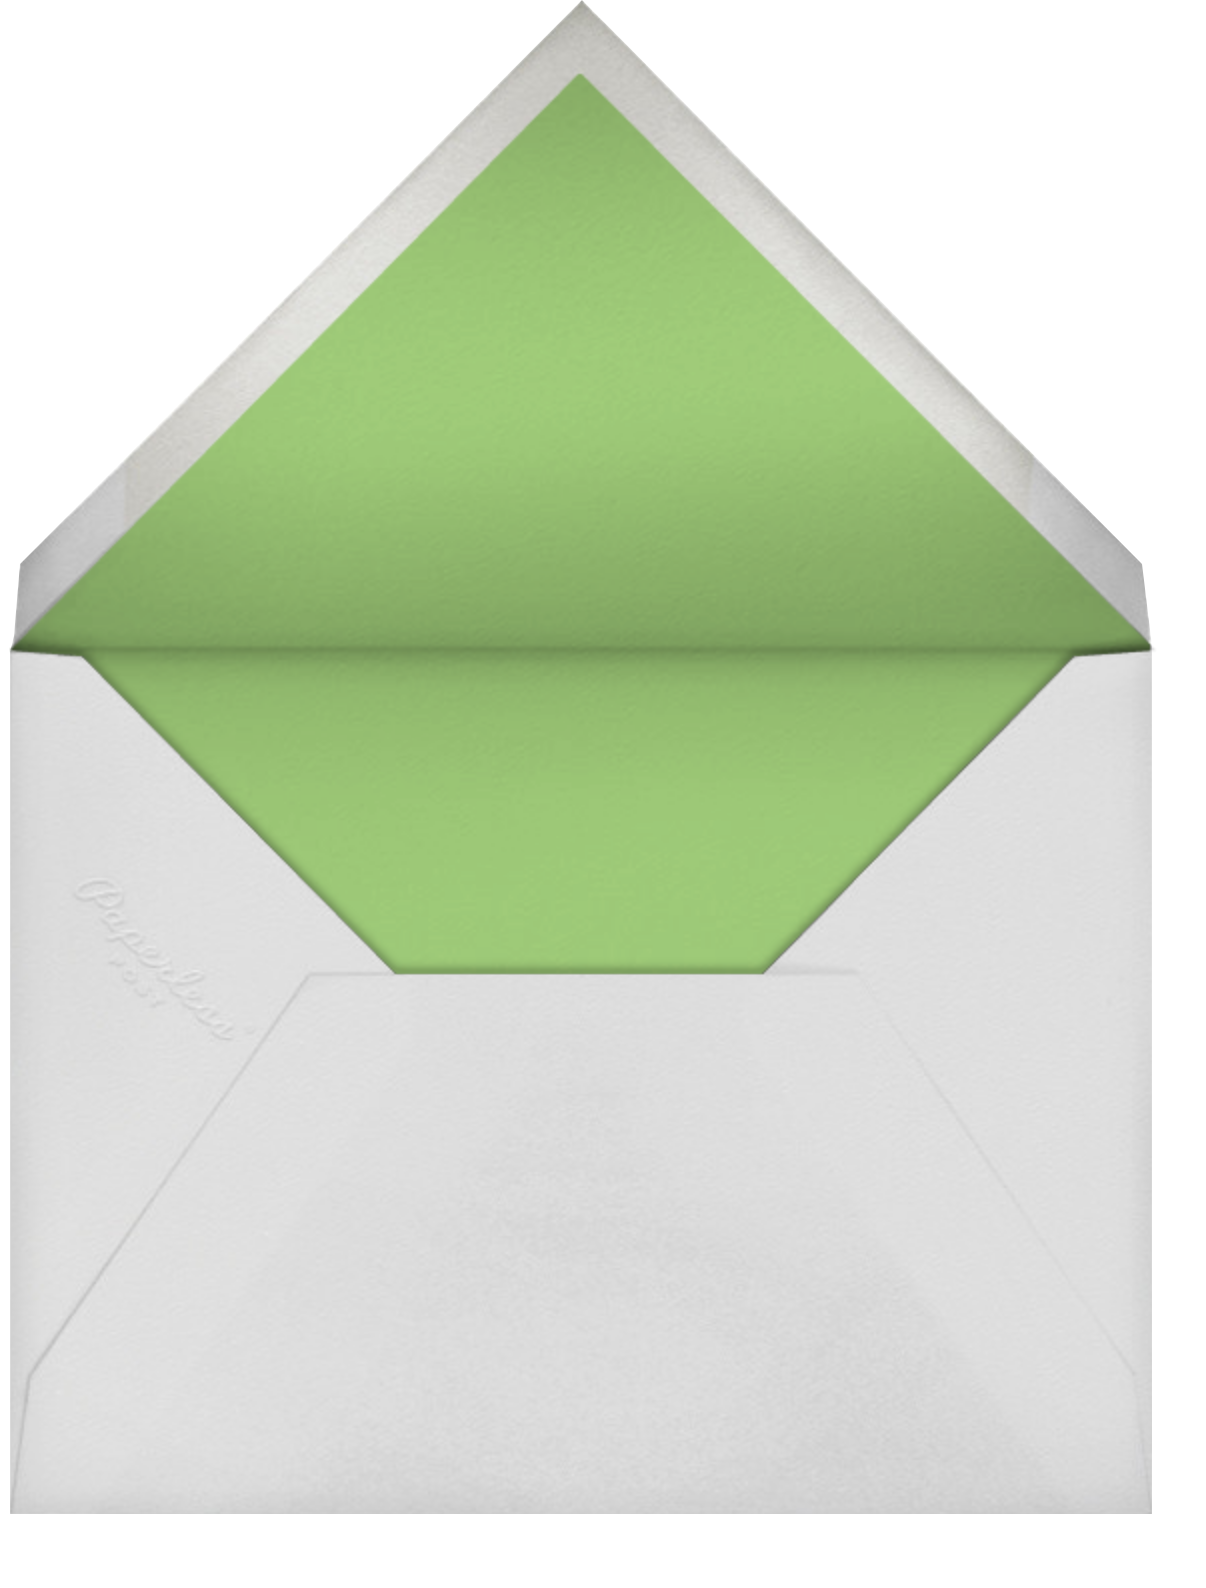 Mascarene (Save the Date) - Green - Crane & Co. - Save the date - envelope back